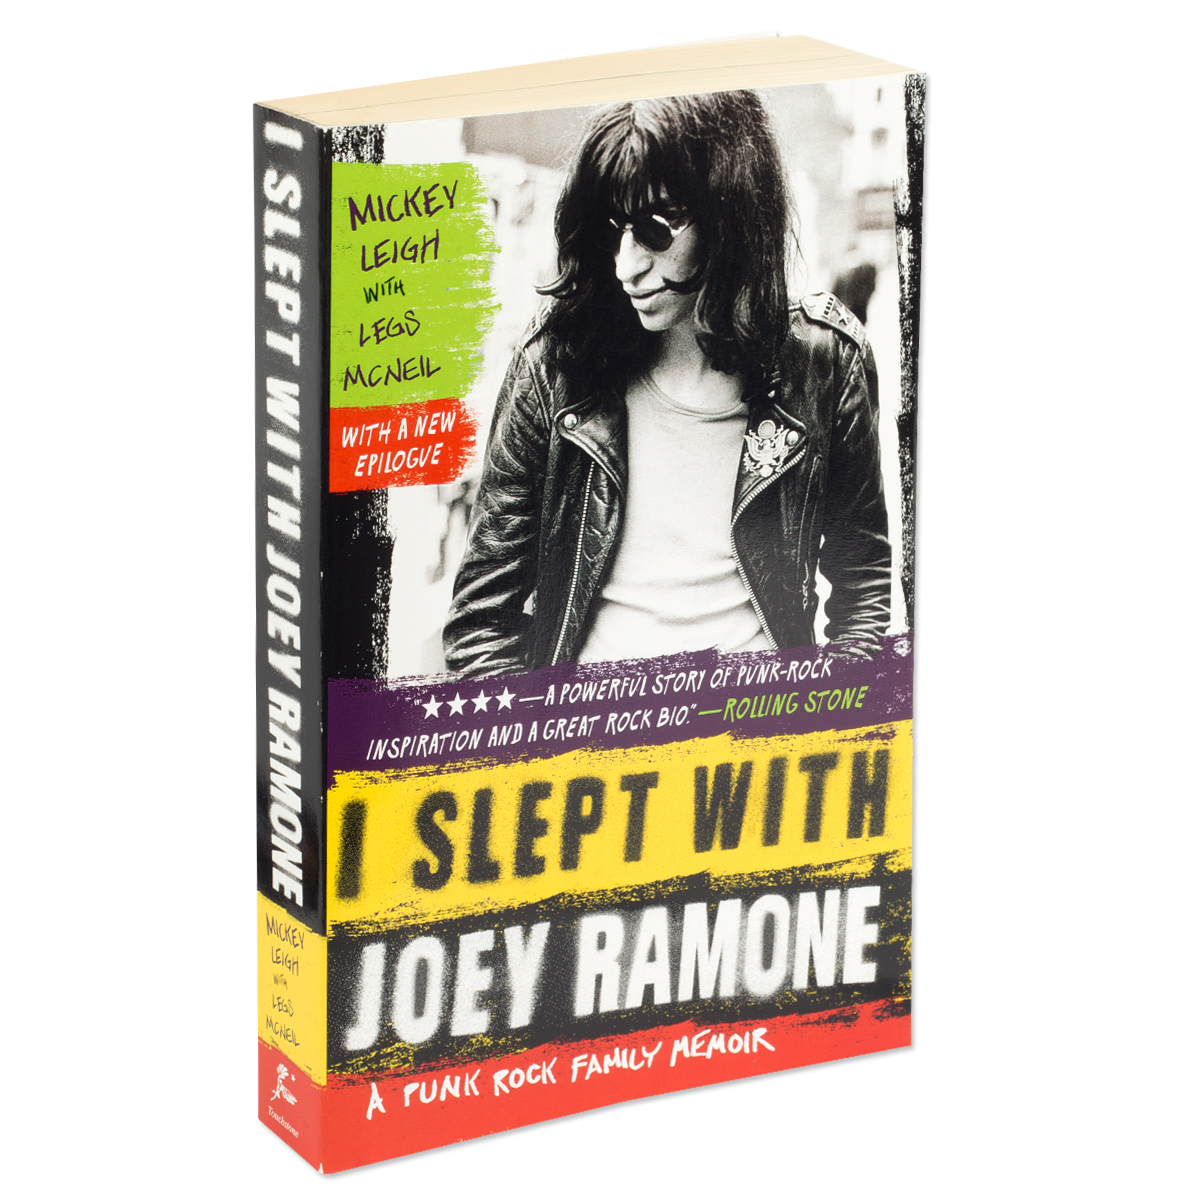 I Slept With Joey Ramone: A Punk Rock Family Memoir by Mickey Leigh